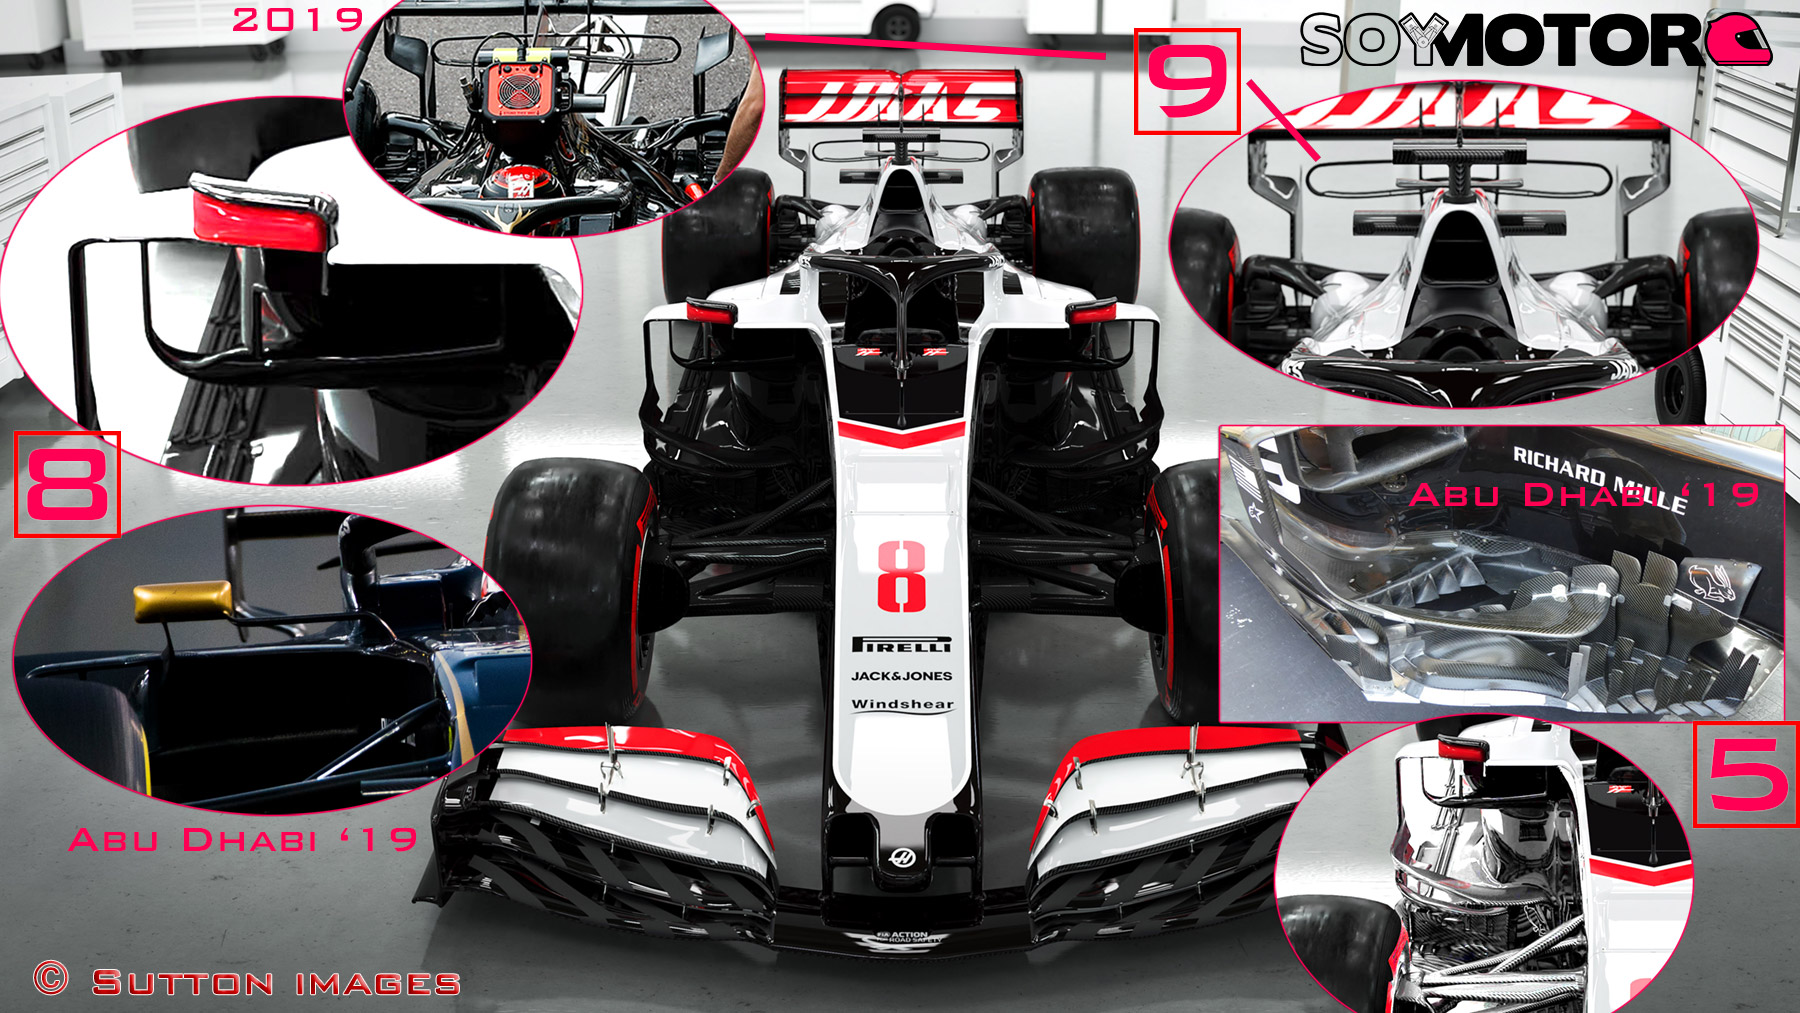 haas-vf20-vista-frontal2.jpg